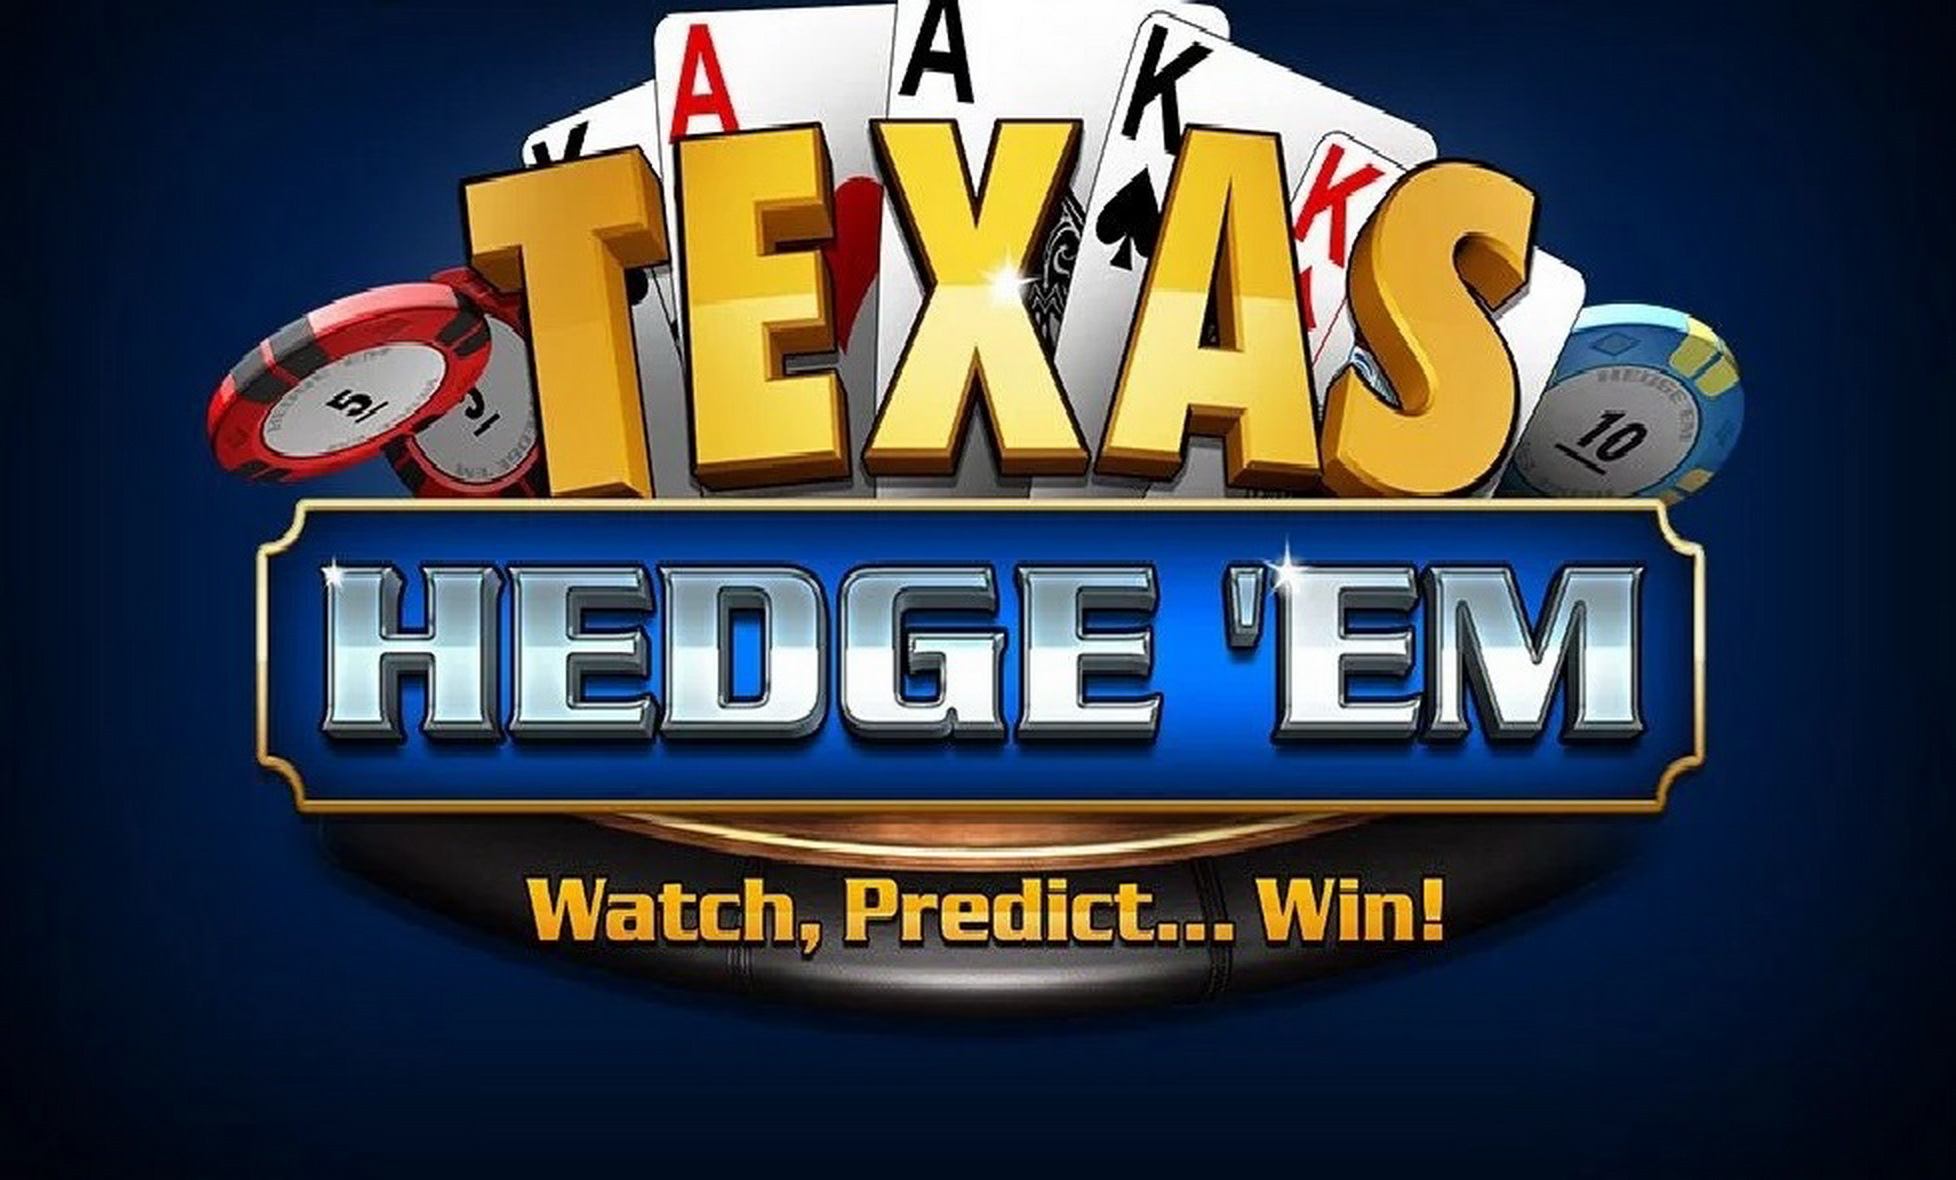 The Texas Hedge 'Em Online Slot Demo Game by Qeetoto